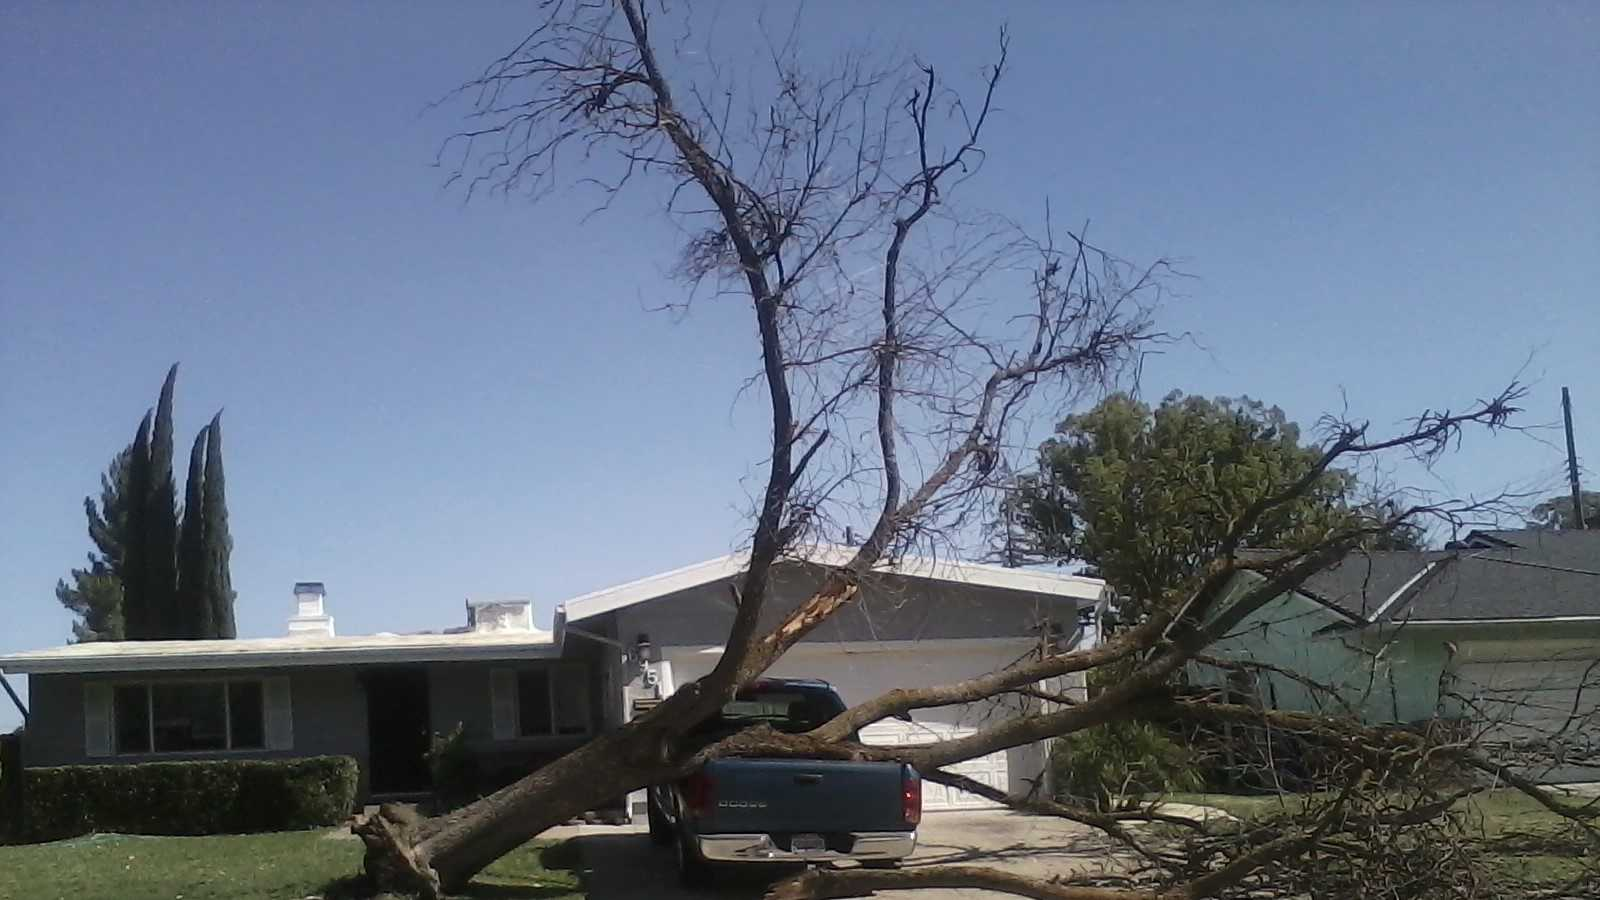 A tree fell on top of a pickup truck on Hogan Drive in Sacramento.